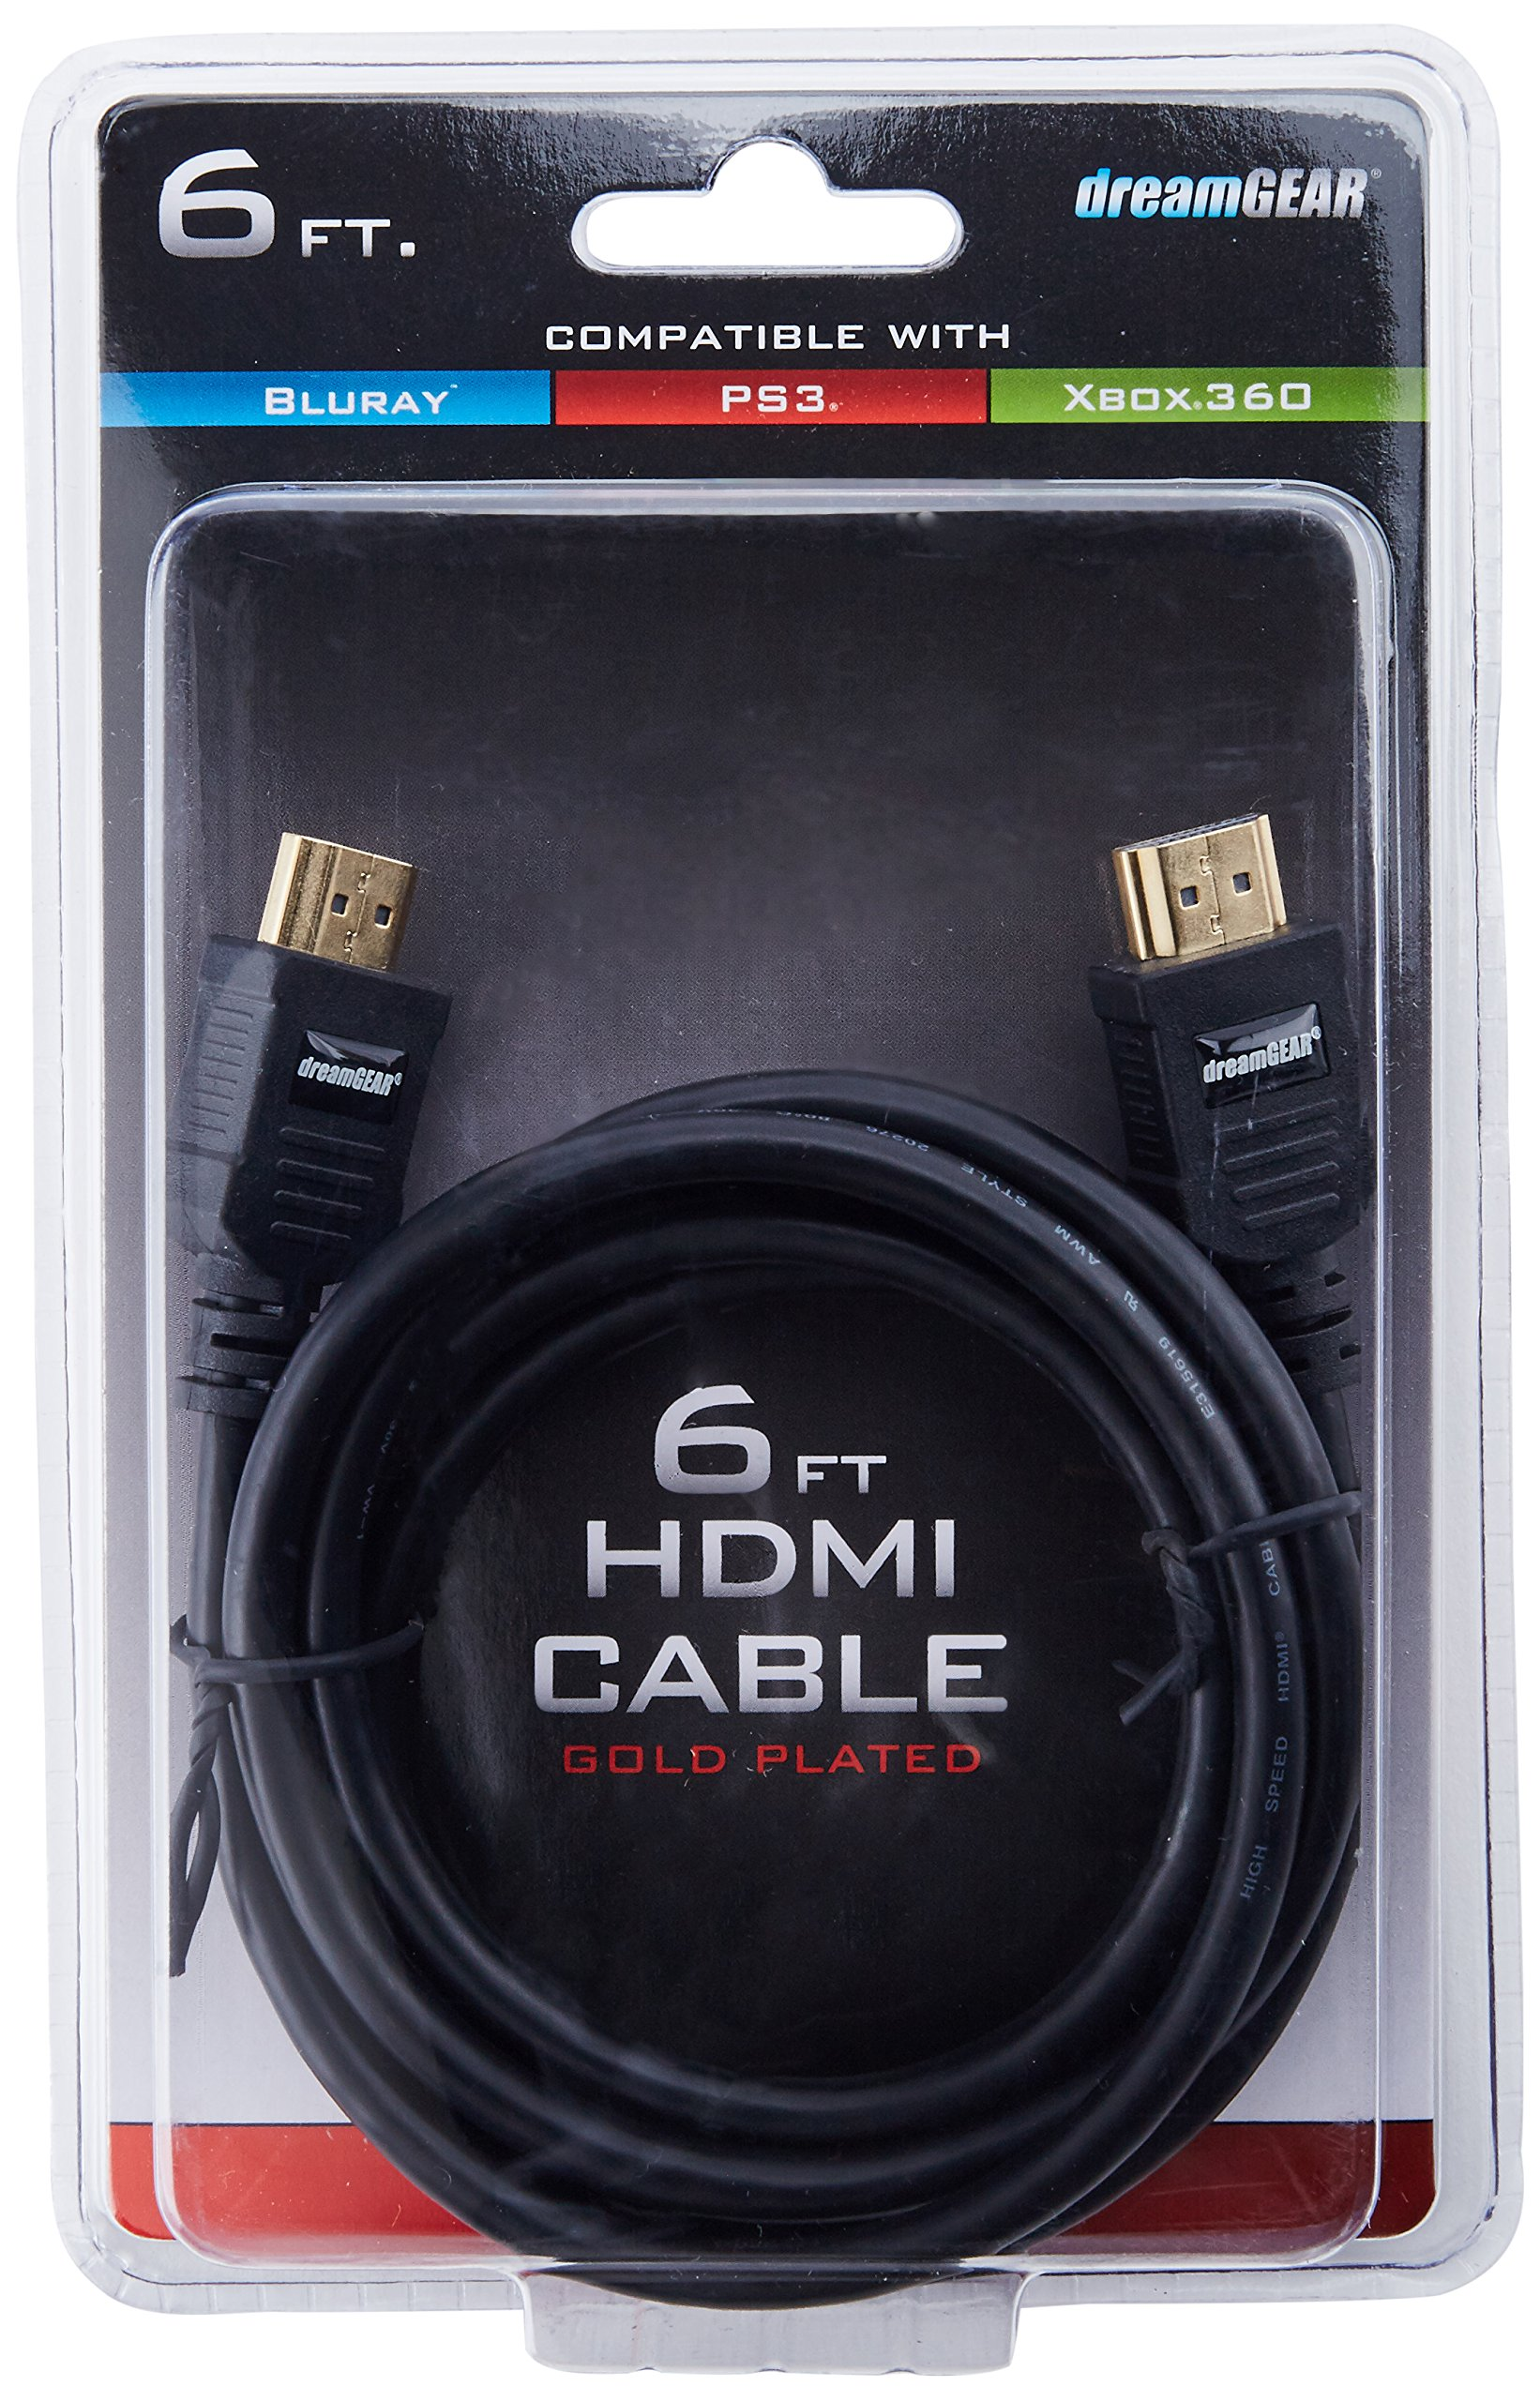 dreamGEAR High Speed HMDI Cable (v. 1.3)